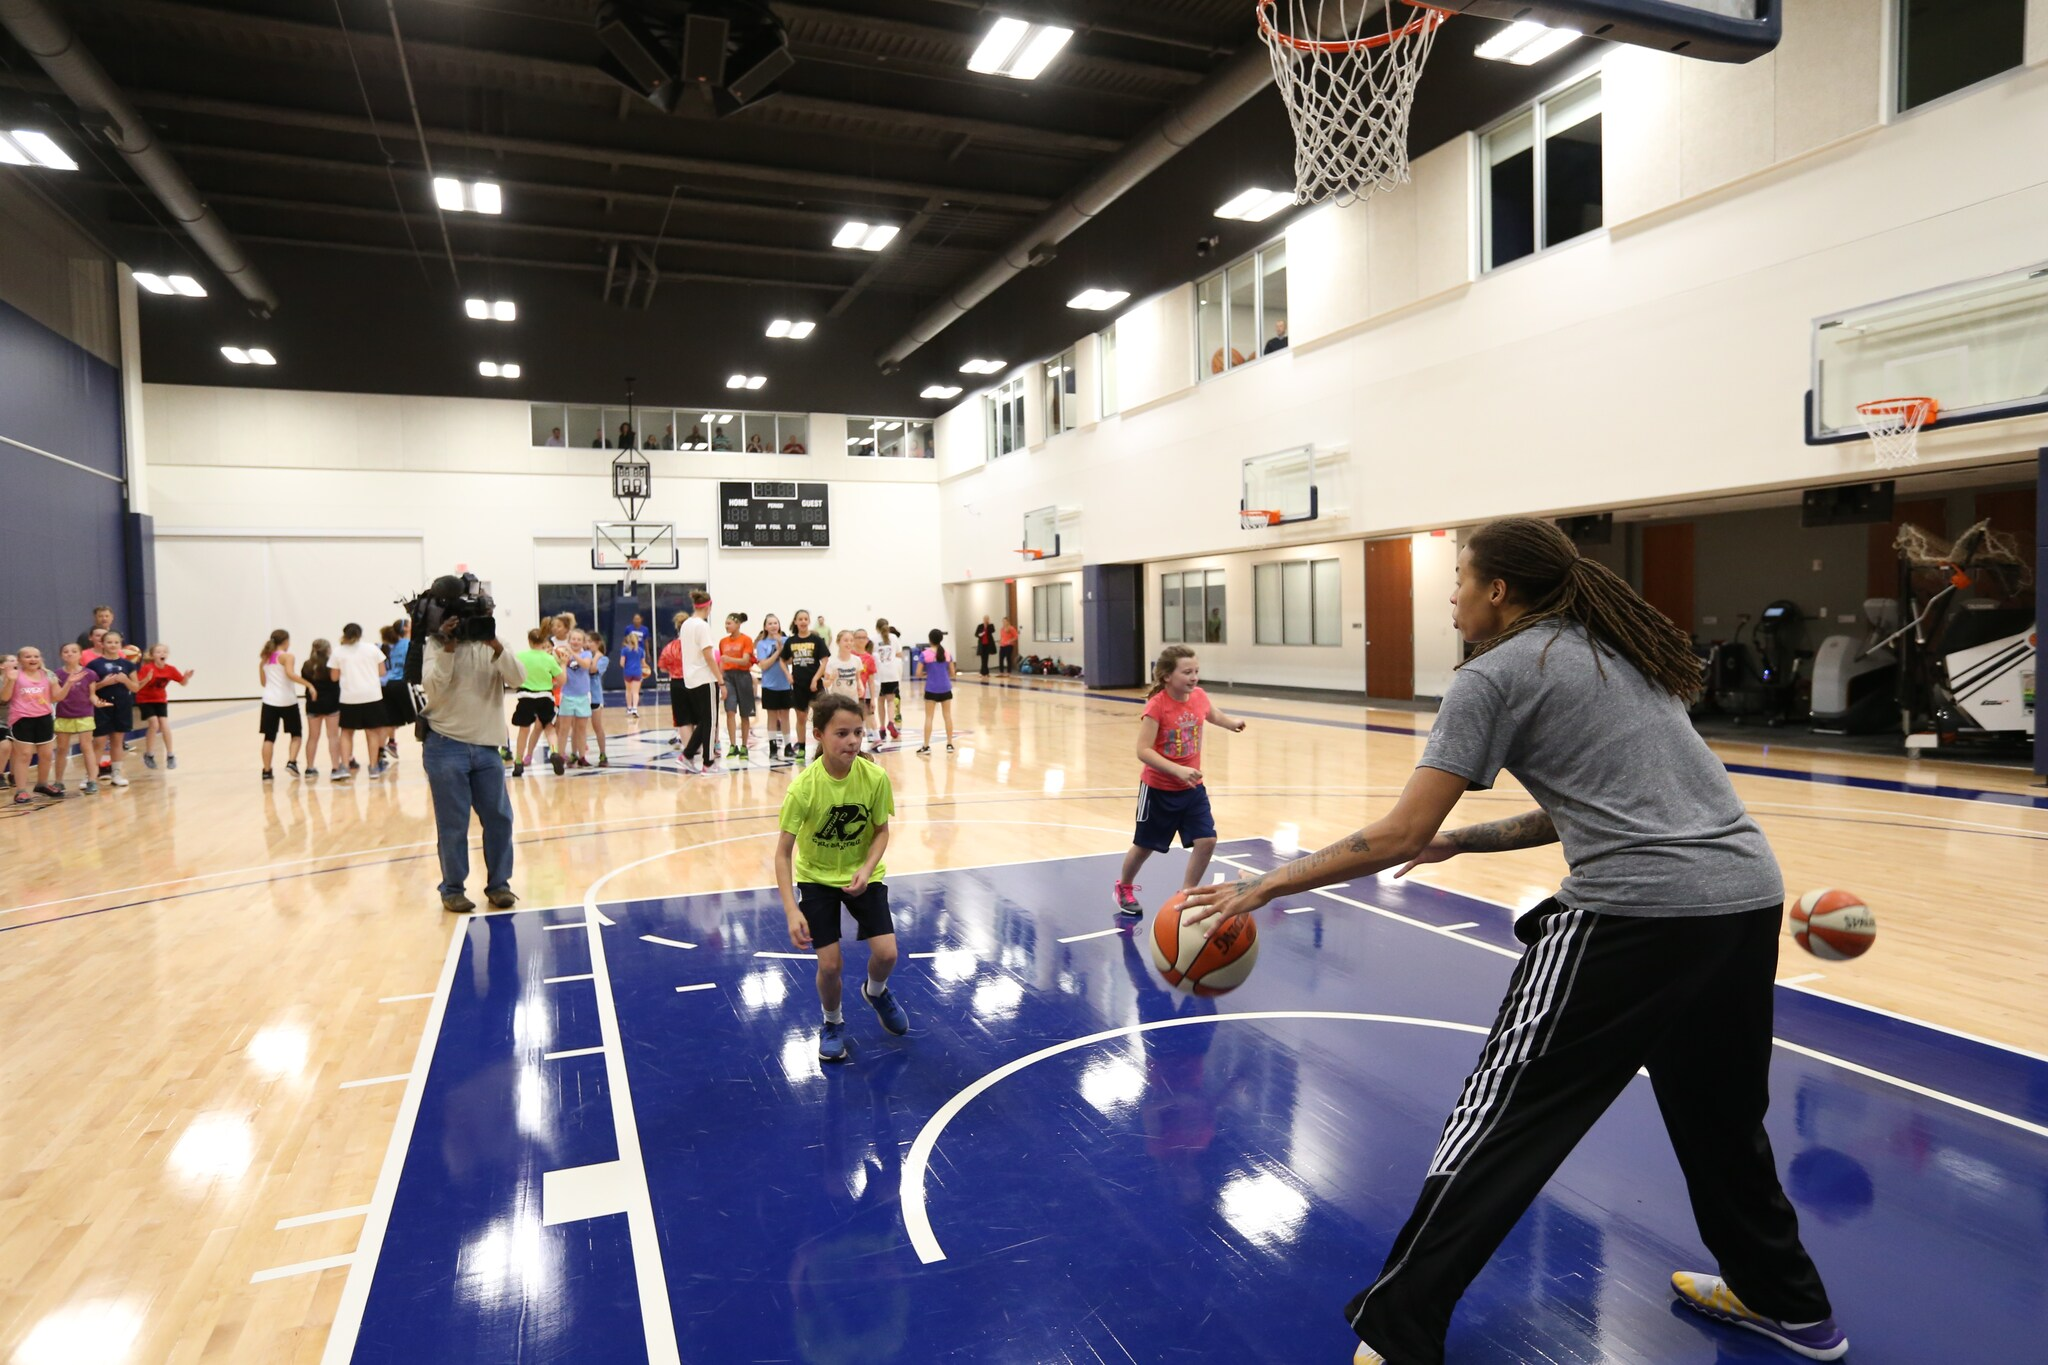 MINNEAPOLIS, MN - MAY 12: Seimone Augustus and Bashaara Graves of the Minnesota Lynx host a Lynx Jr. WNBA Clinic for girls ages 4th thru 9th grade on May 12, 2016 at the Minnesota Timberwolves and Lynx Courts at Mayo Clinic Square in Minneapolis, Minnesota. NOTE TO USER: User expressly acknowledges and agrees that, by downloading and or using this Photograph, user is consenting to the terms and conditions of the Getty Images License Agreement. Mandatory Copyright Notice: Copyright 2016 NBAE (Photo by David Sherman/NBAE via Getty Images)